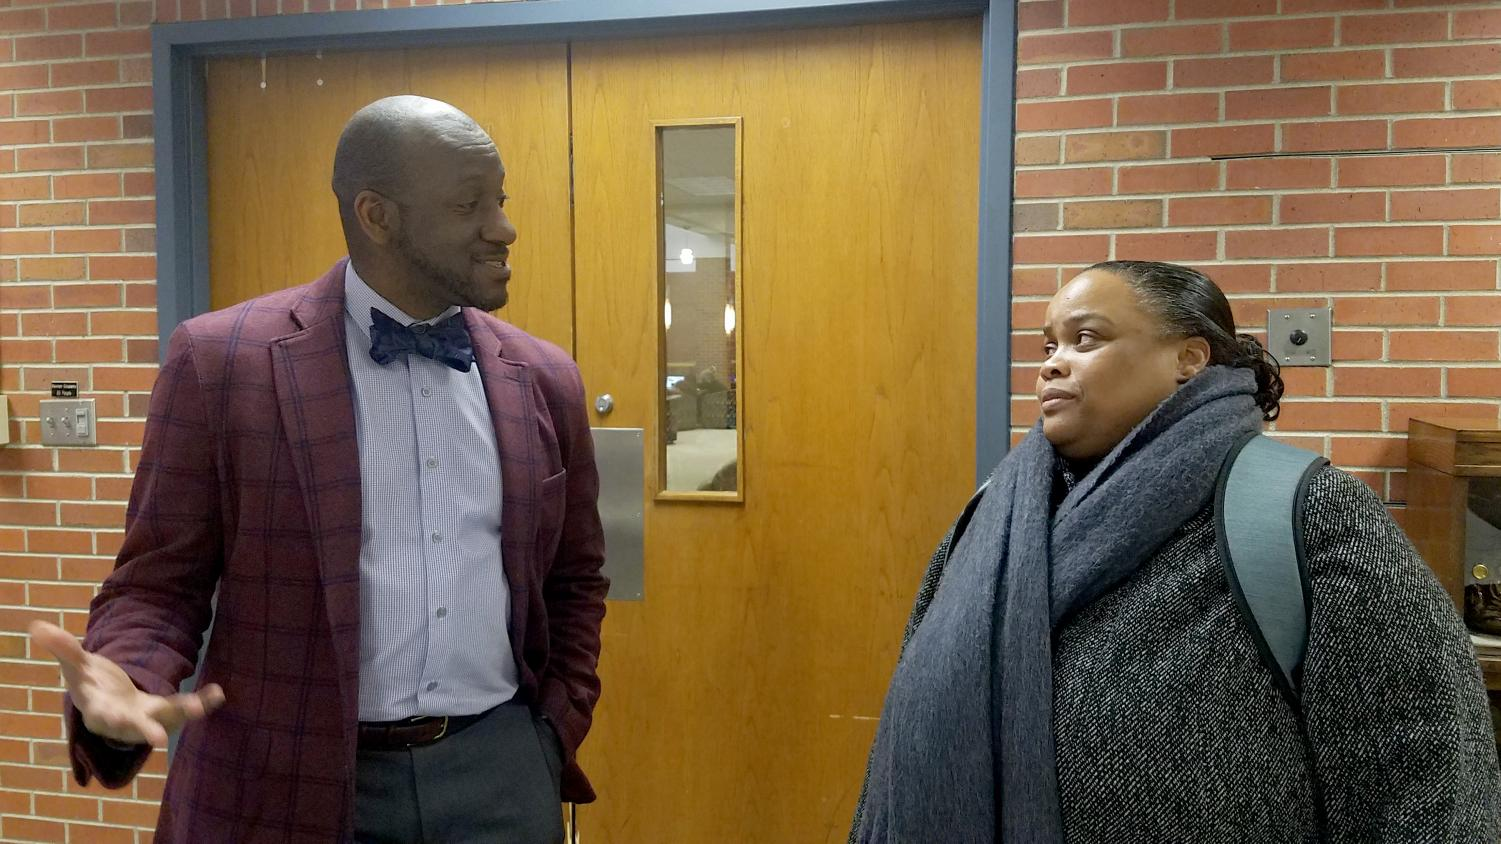 Attorney Michael Taylor and interim director of the Office of Diversity, Inclusion, Equity and Access Kas Williams discuss Taylor's presentation on being an African American attorney.